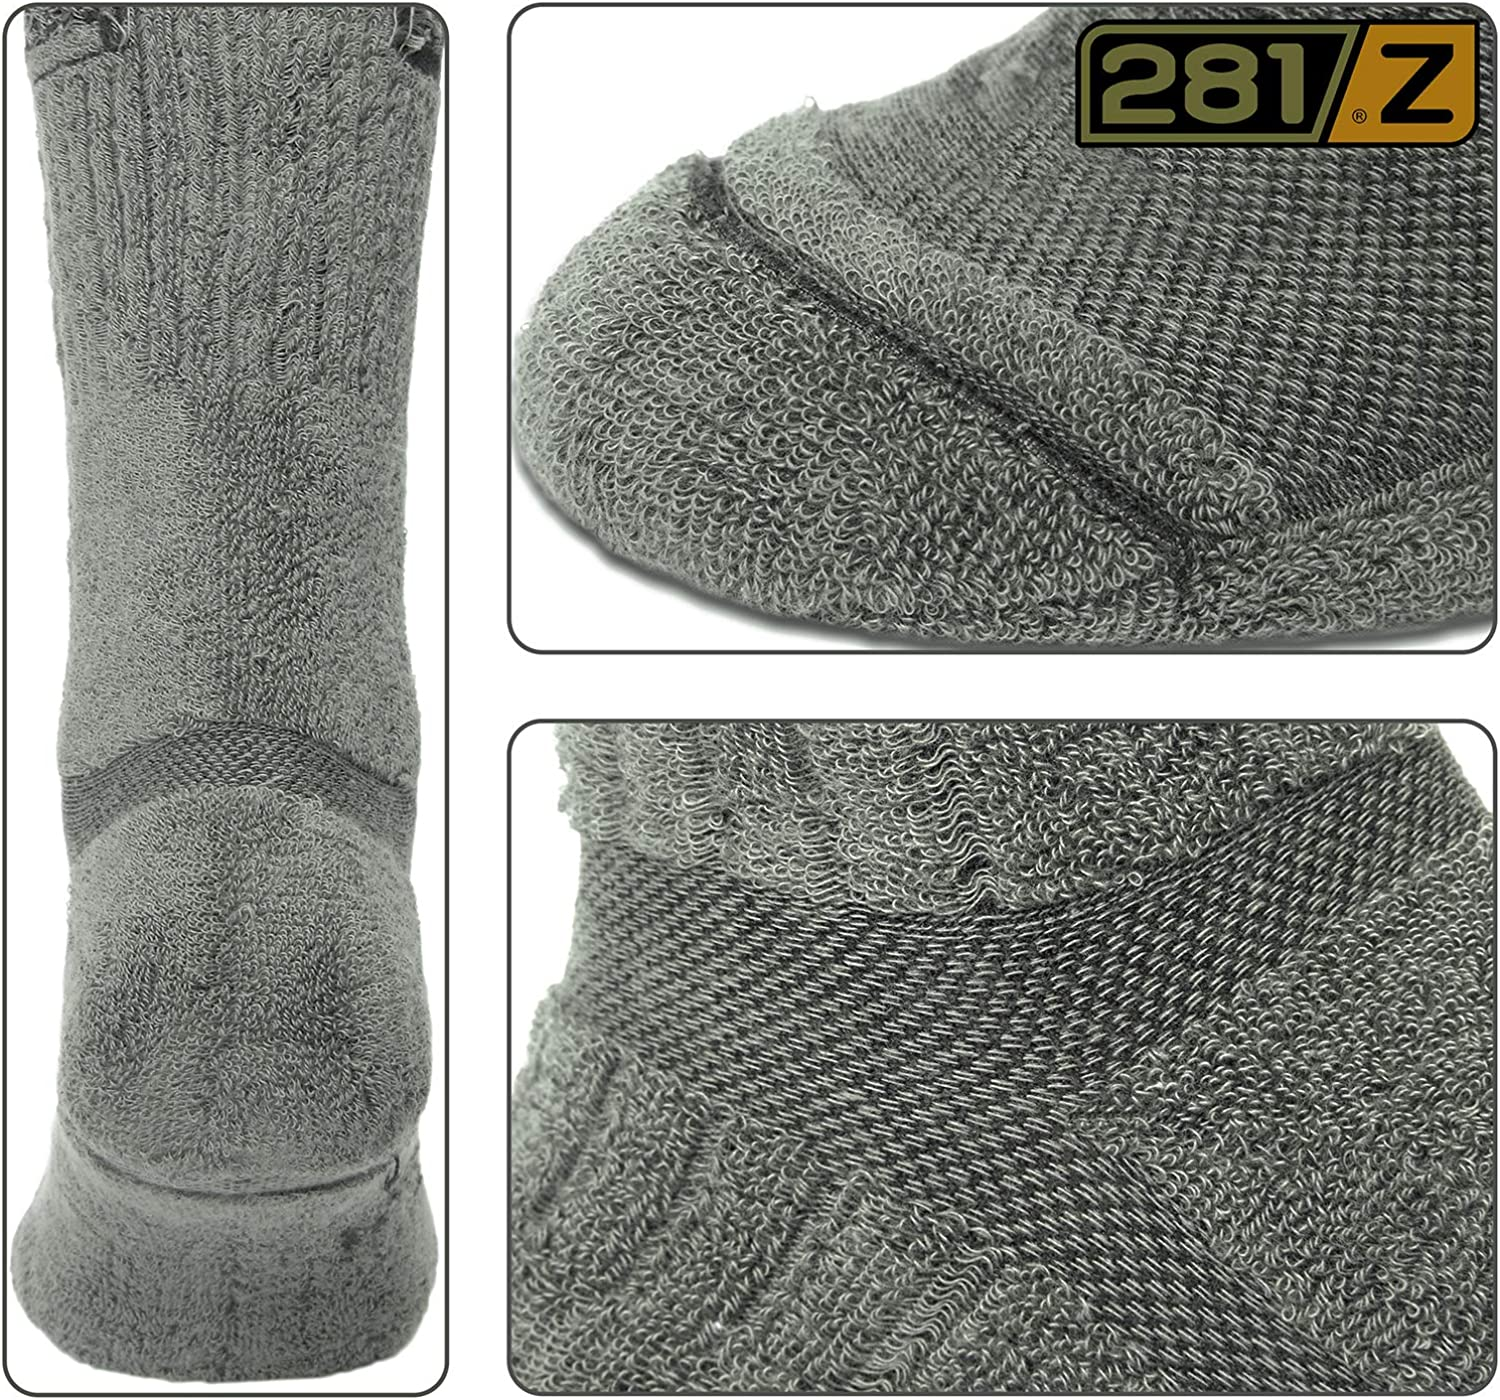 Sage Green Outdoor Athletic Sport 281Z Military Boot Socks Tactical Trekking Hiking